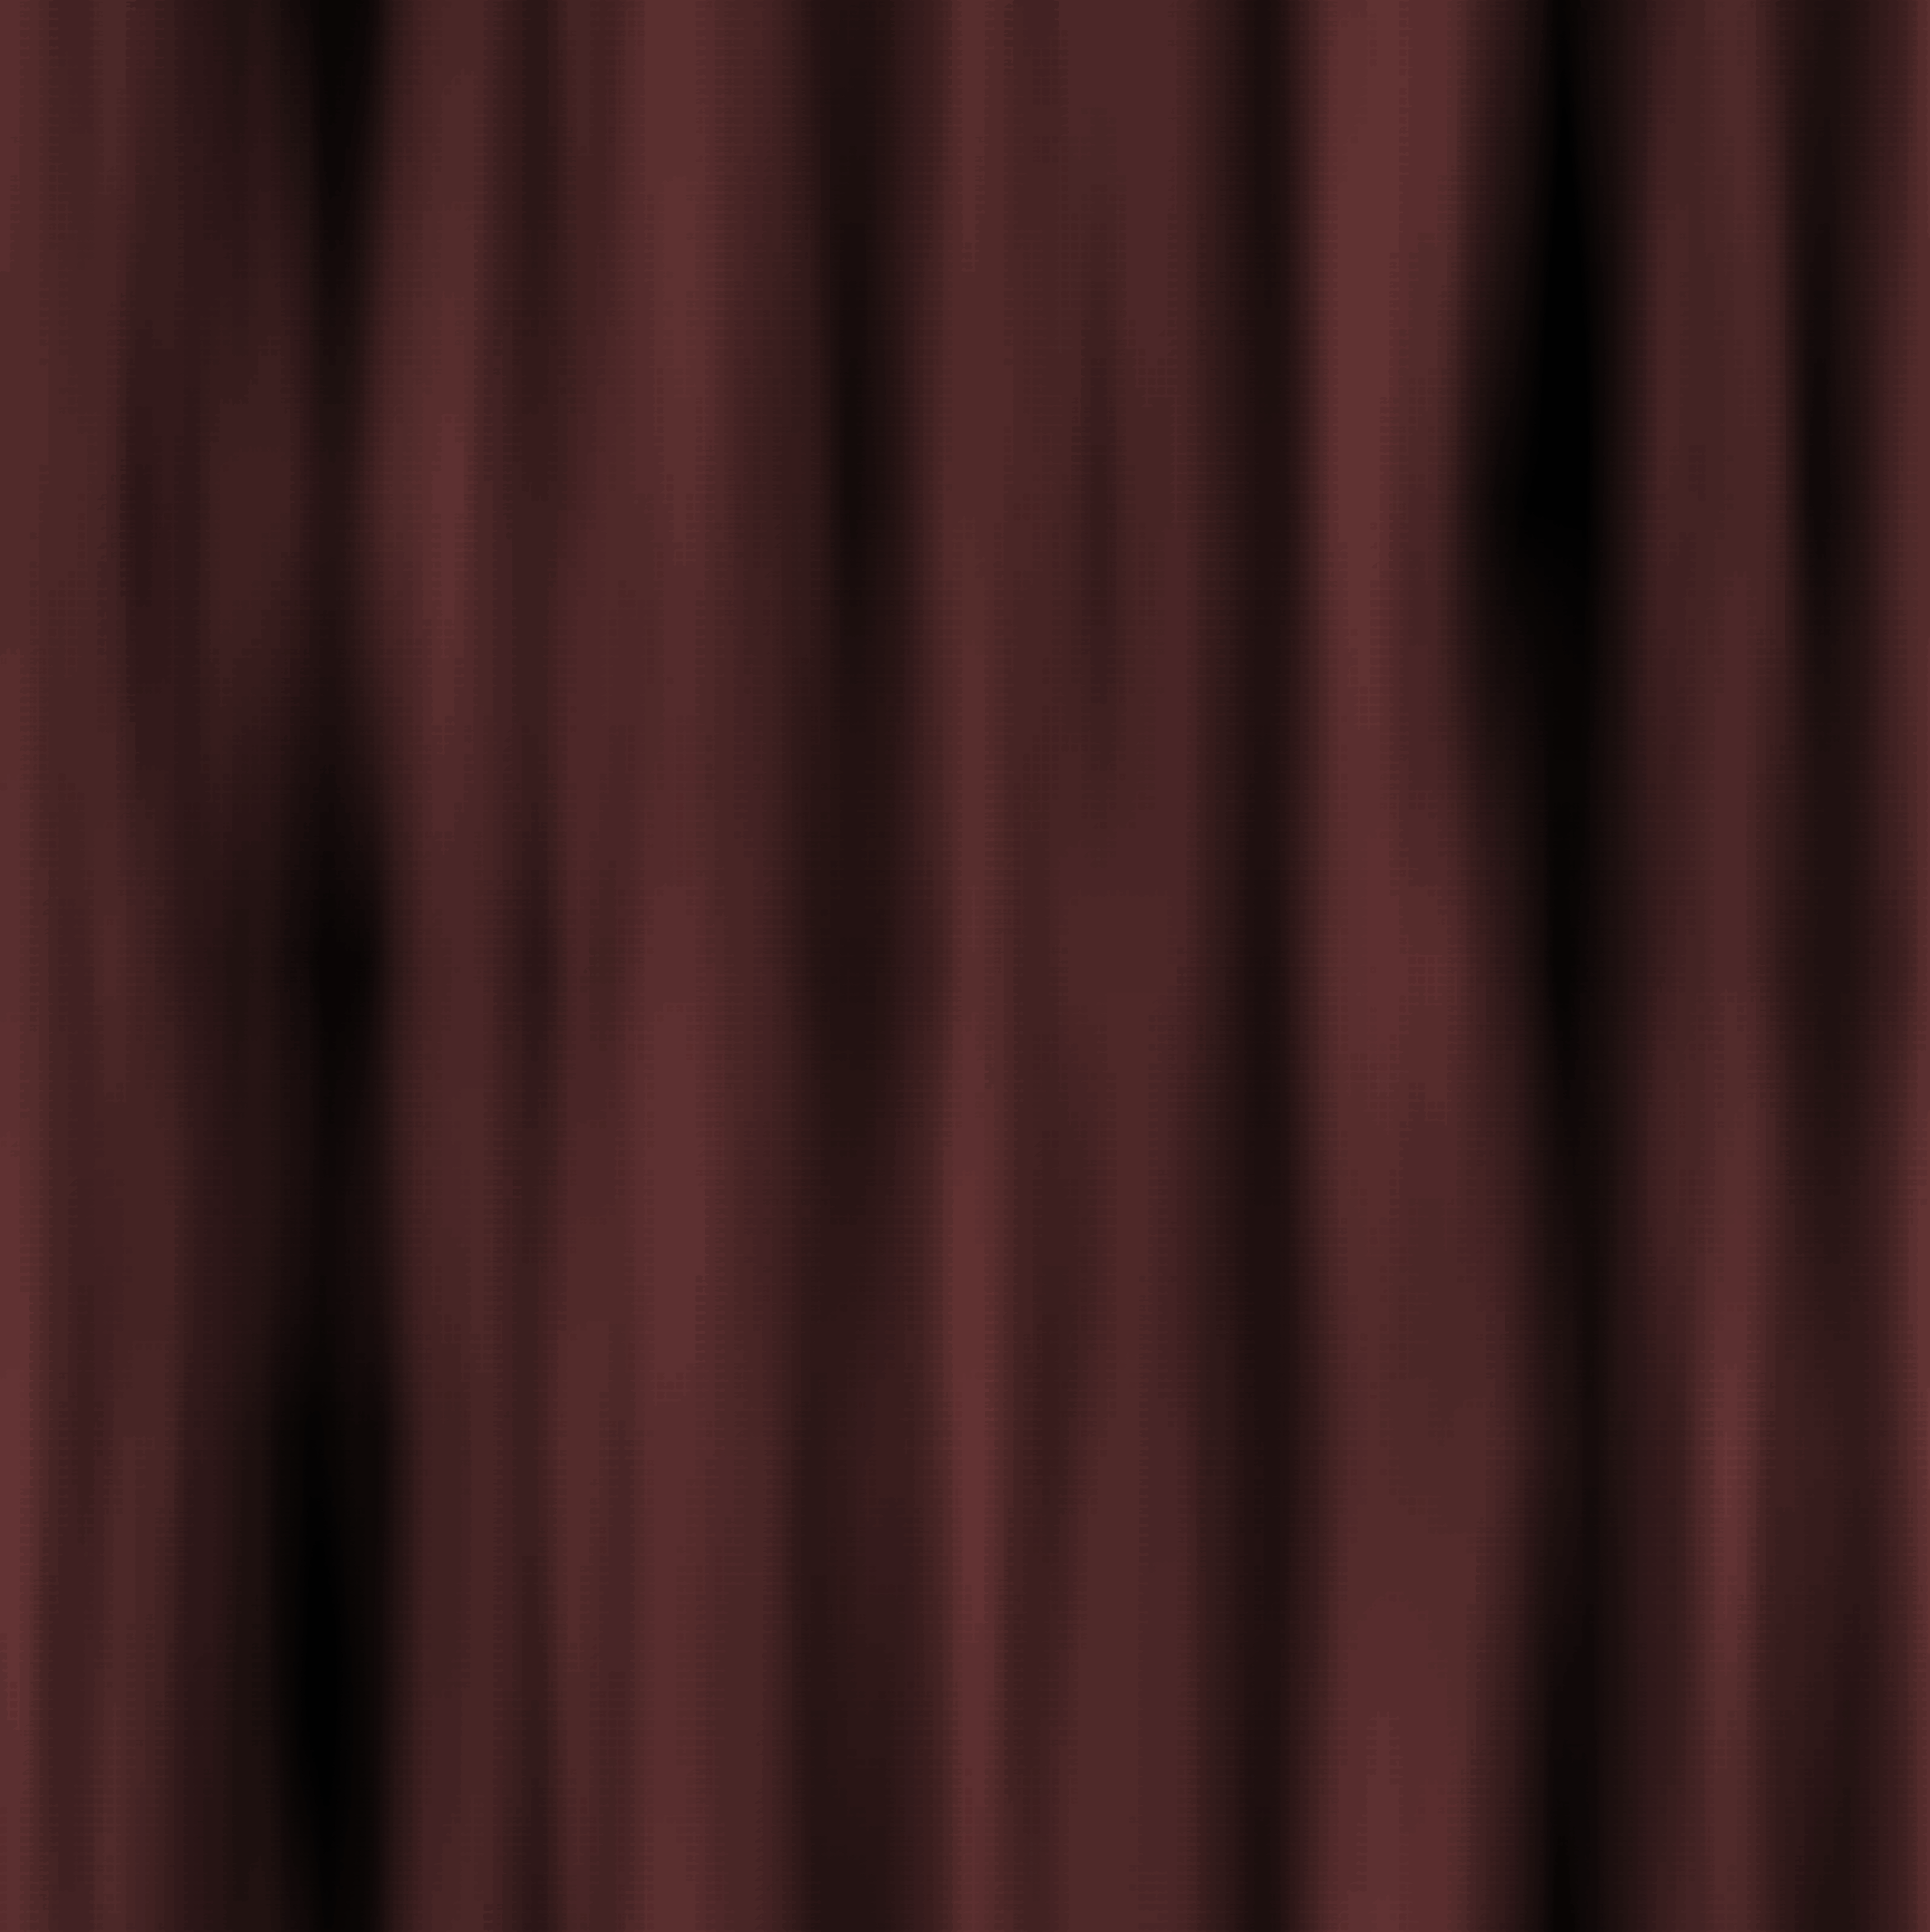 Curtains (colour 2) by Firkin